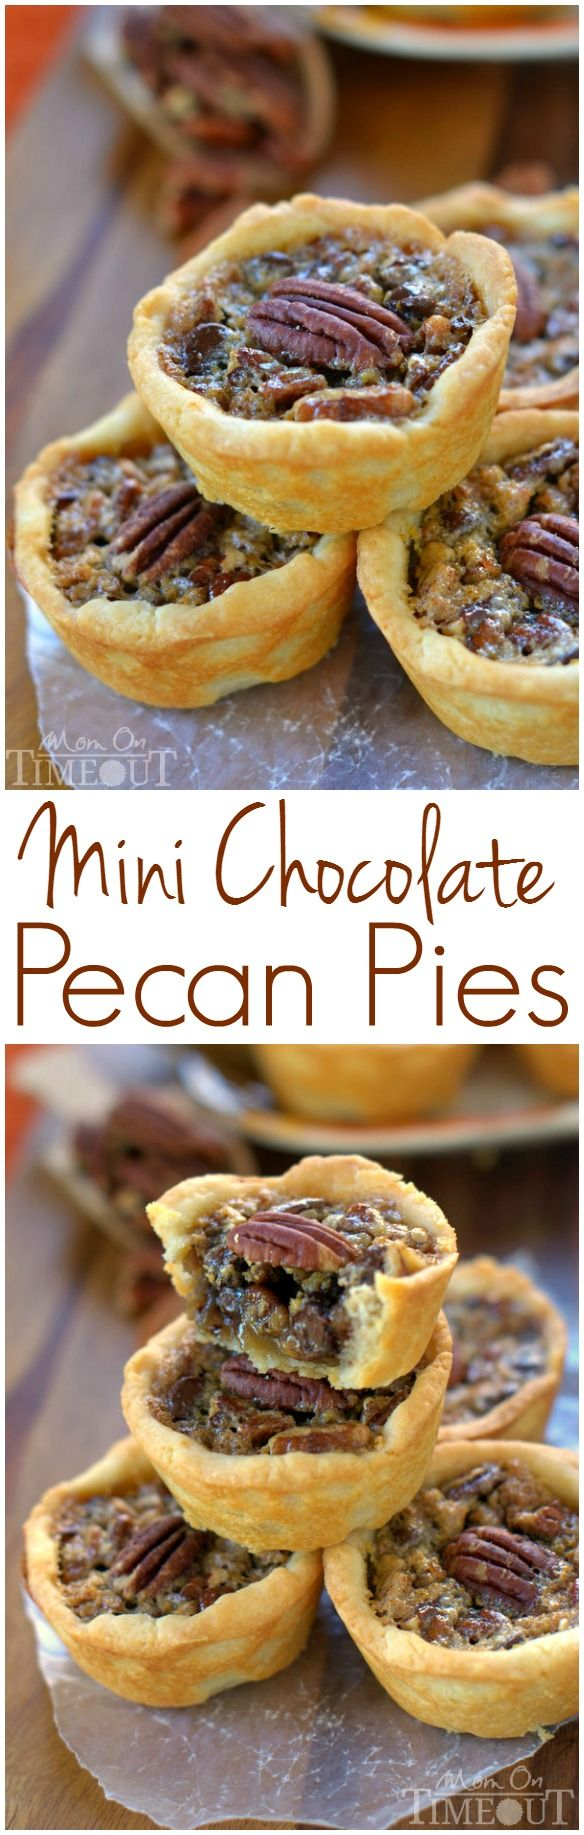 These Mini Chocolate Pecan Pies are a dream come true for the holidays! Sweet chocolate morsels are the perfect addition to traditional pecan pie and everybody loves this mini version! | MomOnTimeout.com | #dessert #ChallengeButter #PinaRecipeFeedaChild